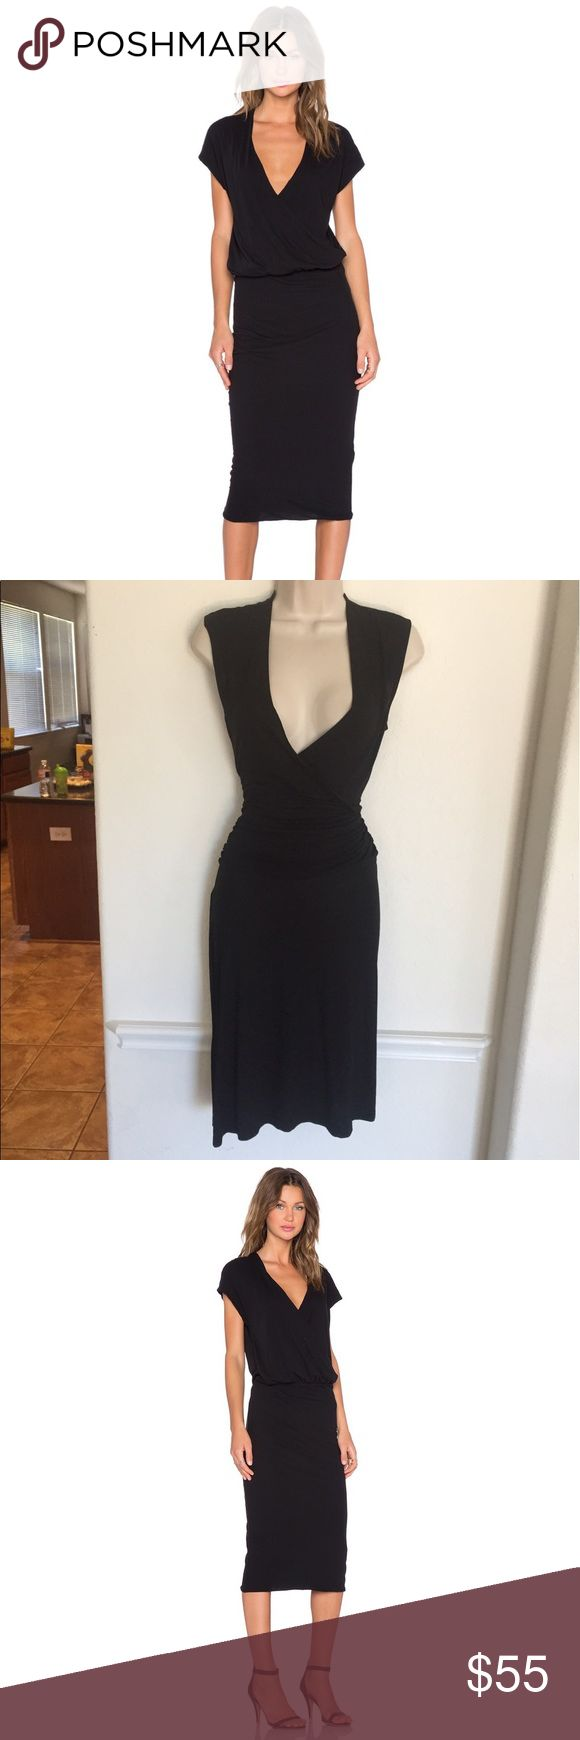 James Perse Black Shirred Dress James Perse Black Shirred Dress  size 2 (medium) Cinched waist - Faux Wrap top James Perse Dresses Midi